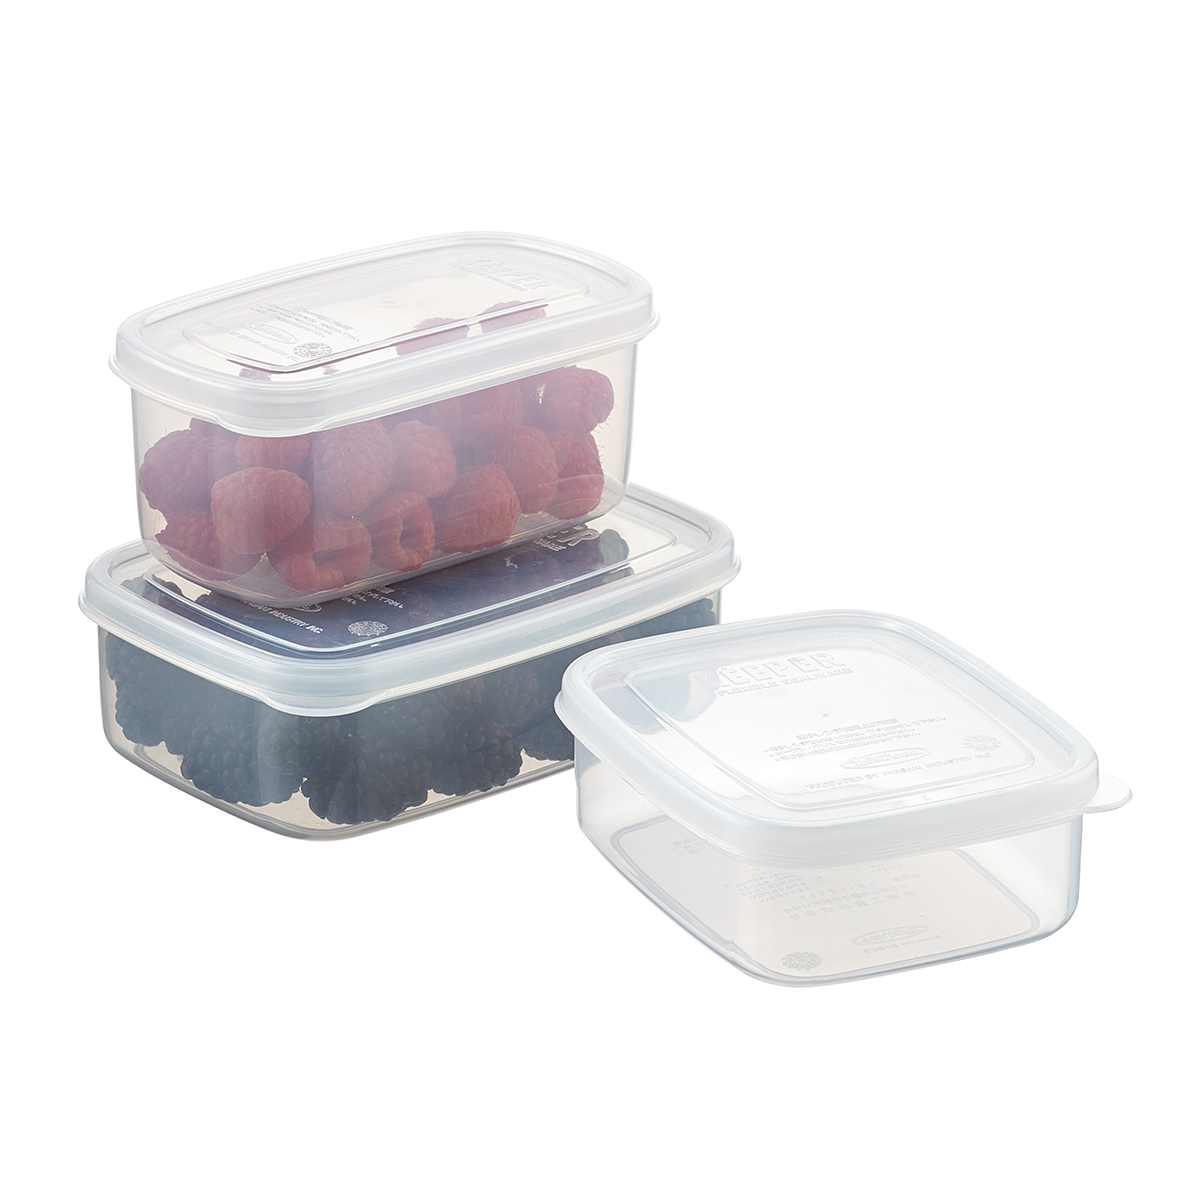 Amazing Professional Food Storage Containers Part - 10: Small Food Keepers